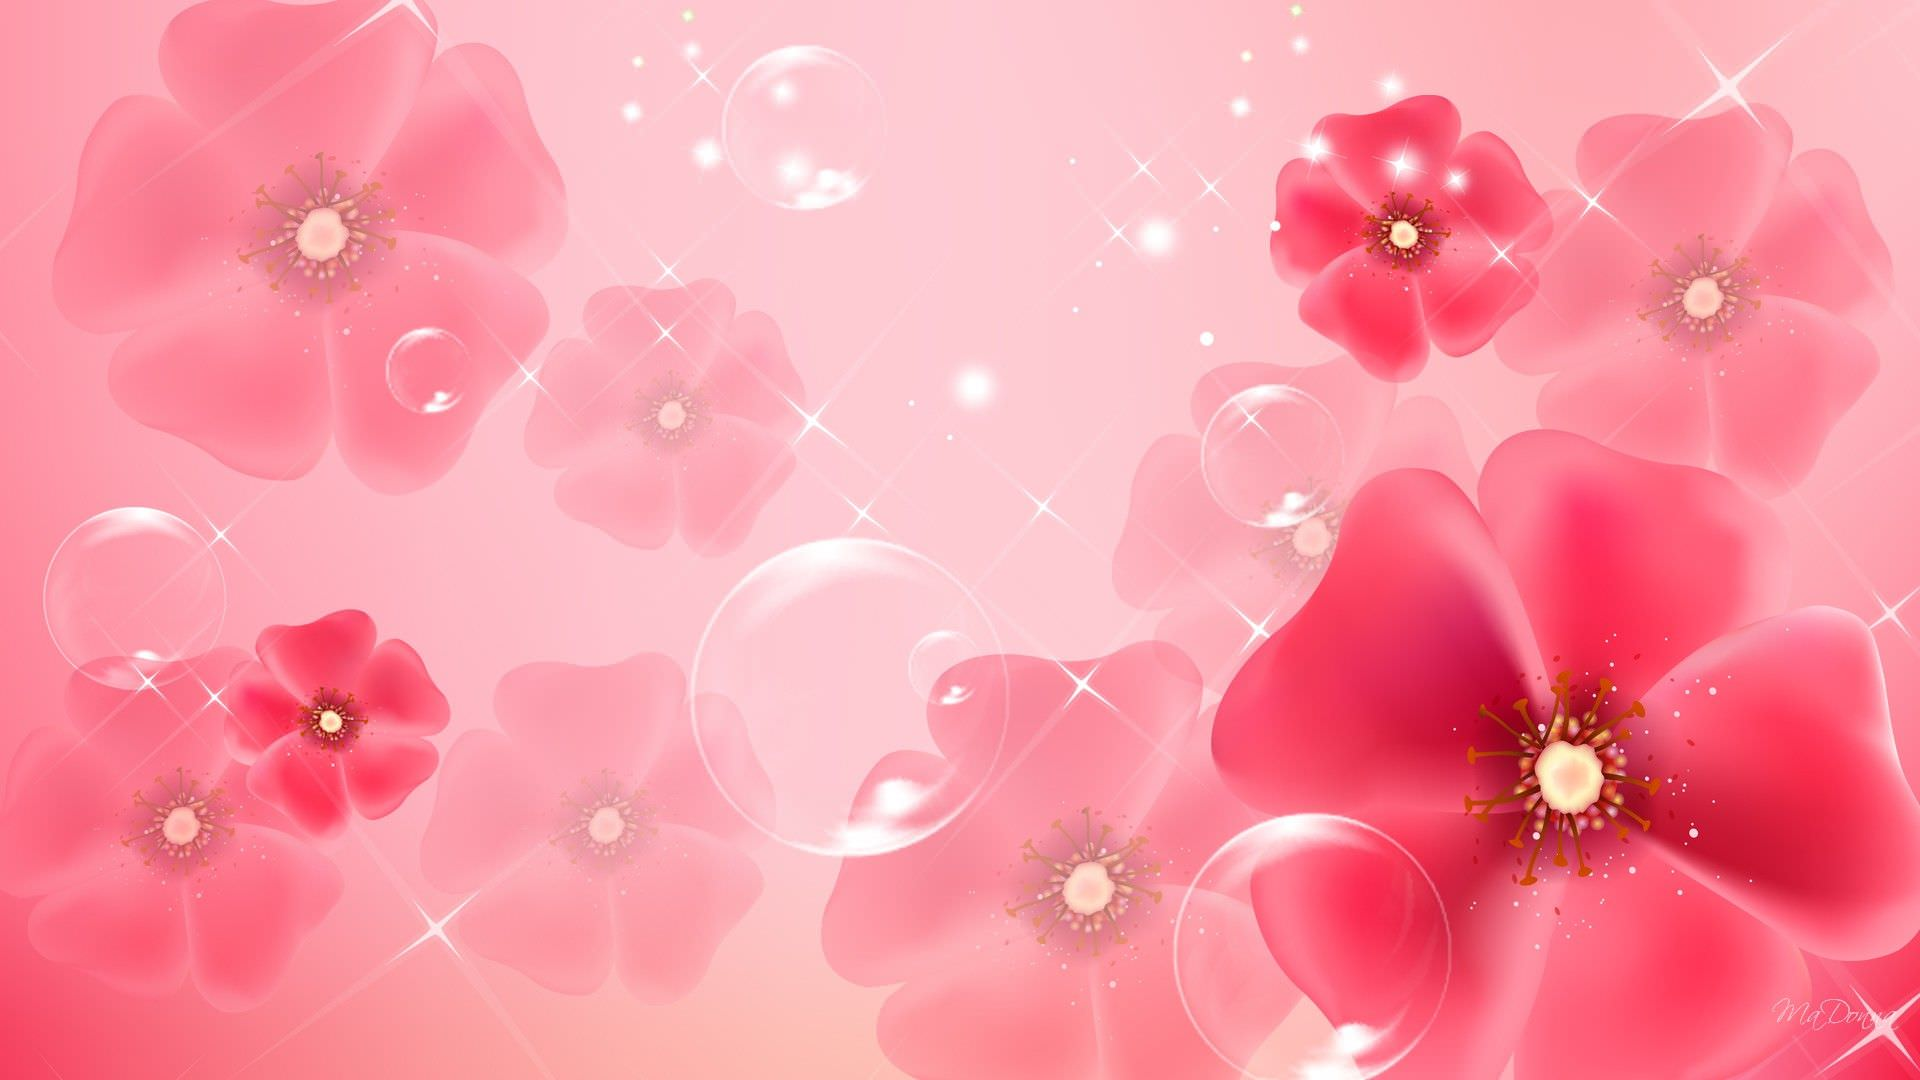 Free Fall Widescreen Wallpaper Bright Floral Background Free Download Pixelstalk Net